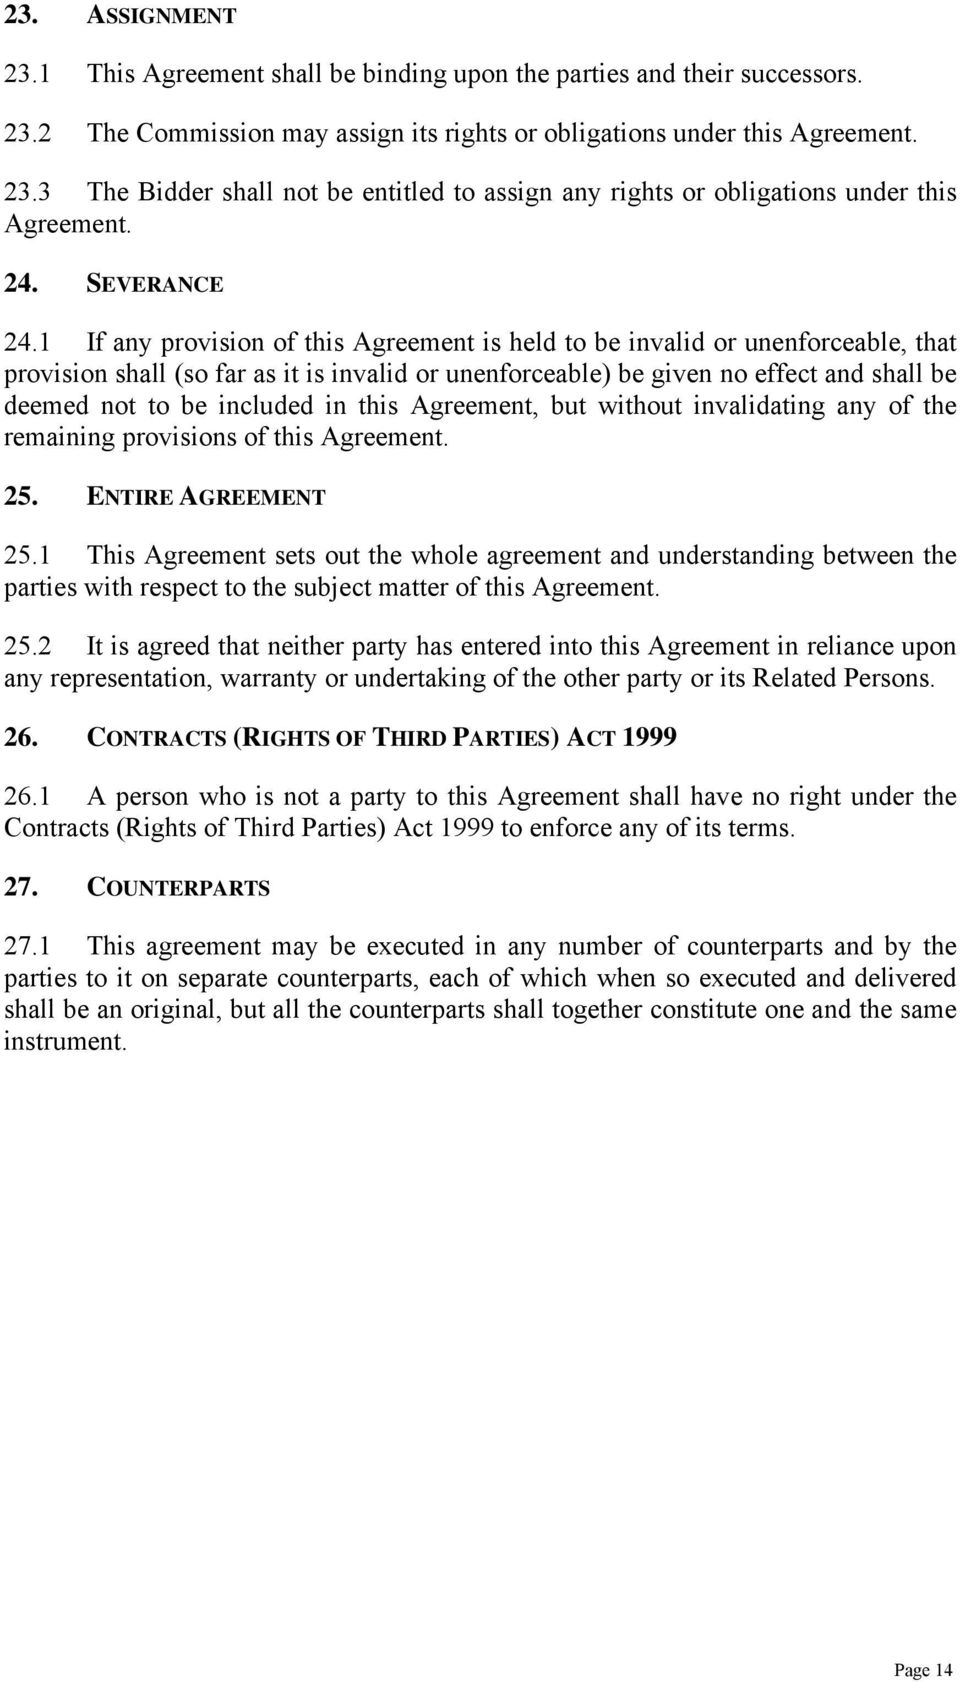 1 If any provision of this Agreement is held to be invalid or unenforceable, that provision shall (so far as it is invalid or unenforceable) be given no effect and shall be deemed not to be included